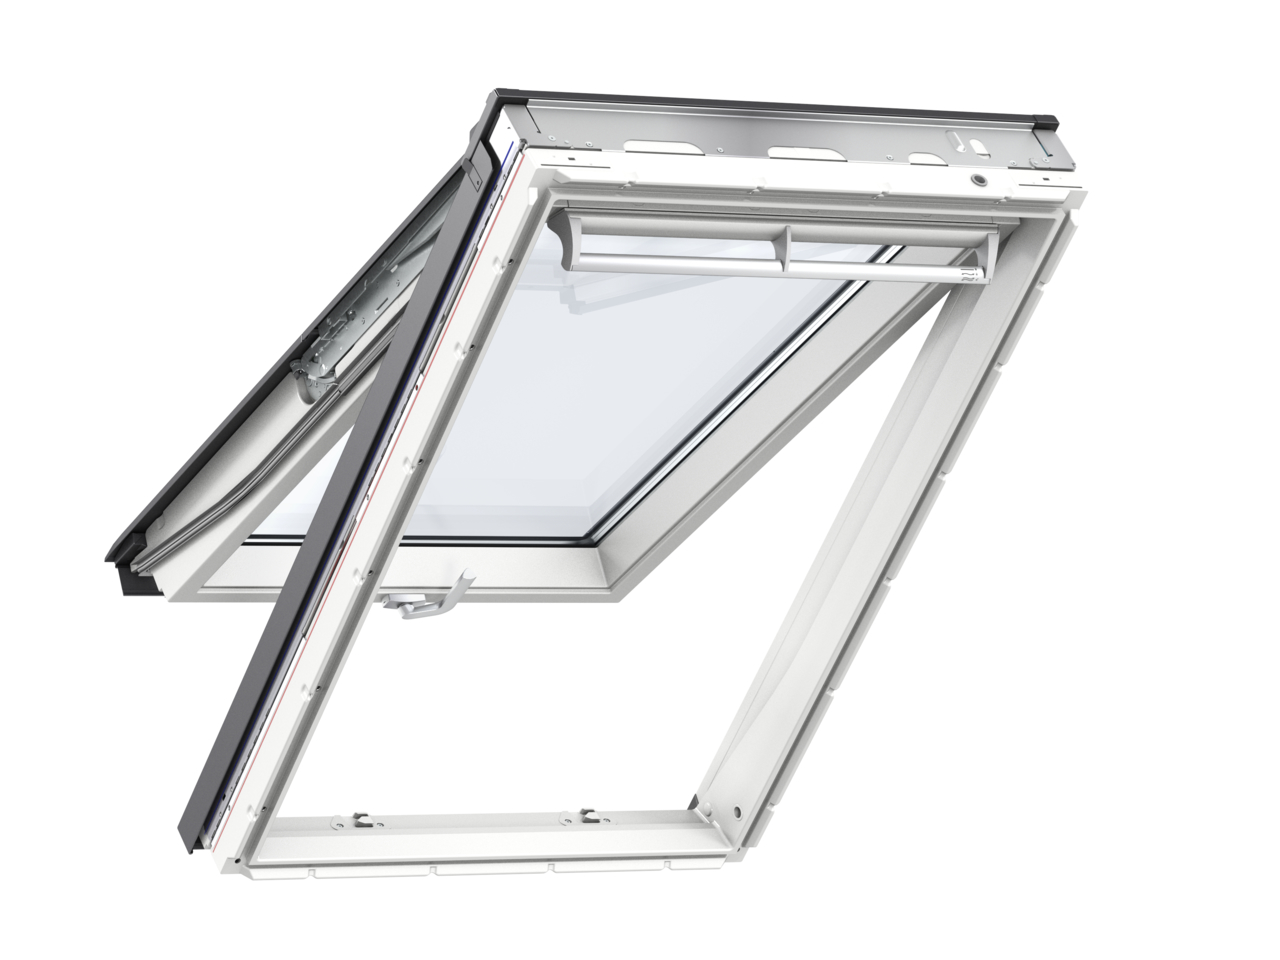 Velux GPU PK08 940 x 1400mm Top Hung Standard 70Pane Roof Window - White Polyurethane